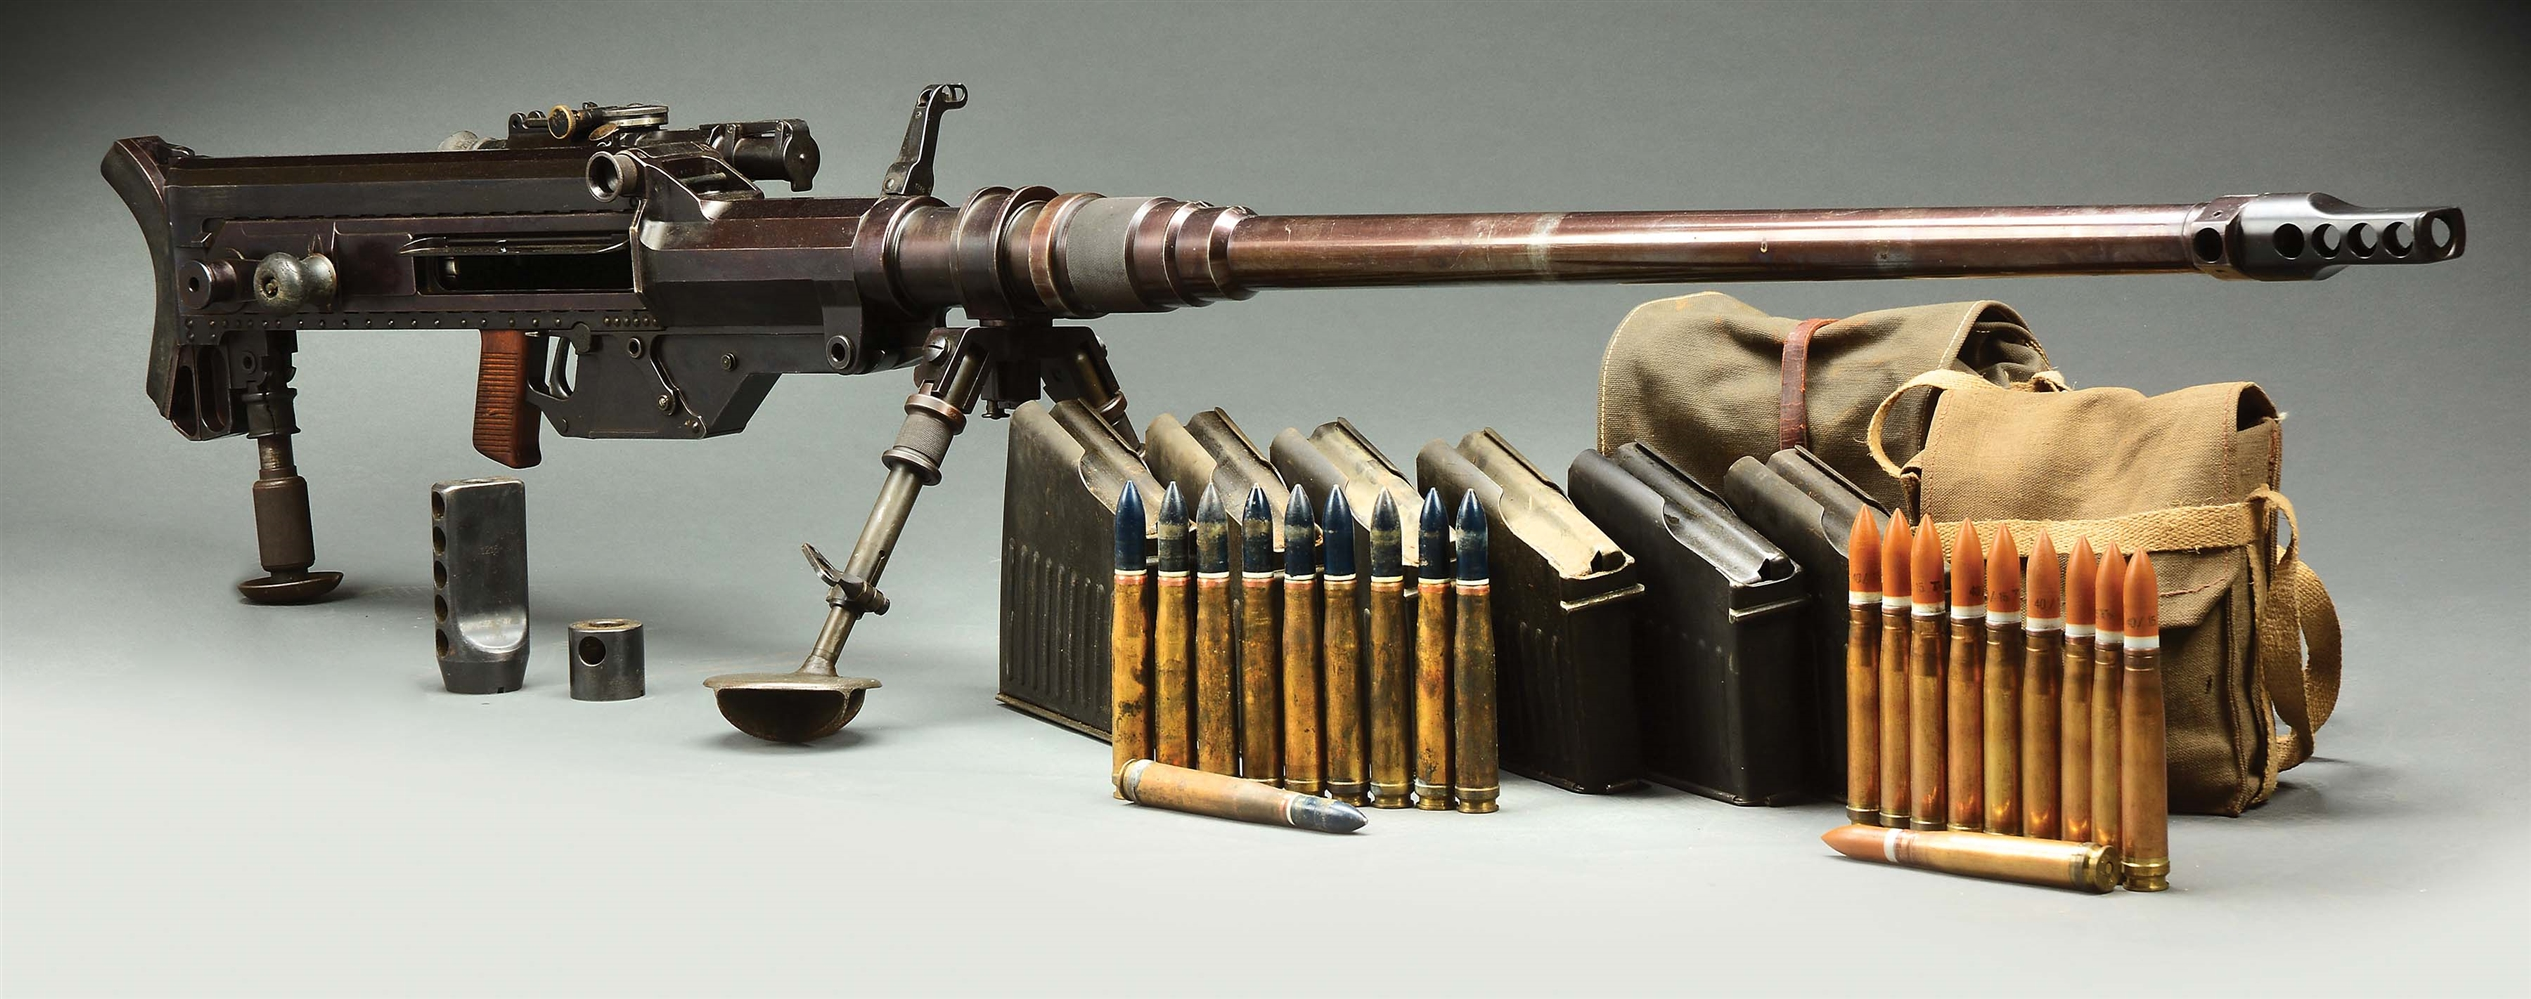 (D) EXCEPTIONAL MATCHING SOLOTHURN S18-1000 ANTI-TANK RIFLE (DESTRUCTIVE DEVICE).